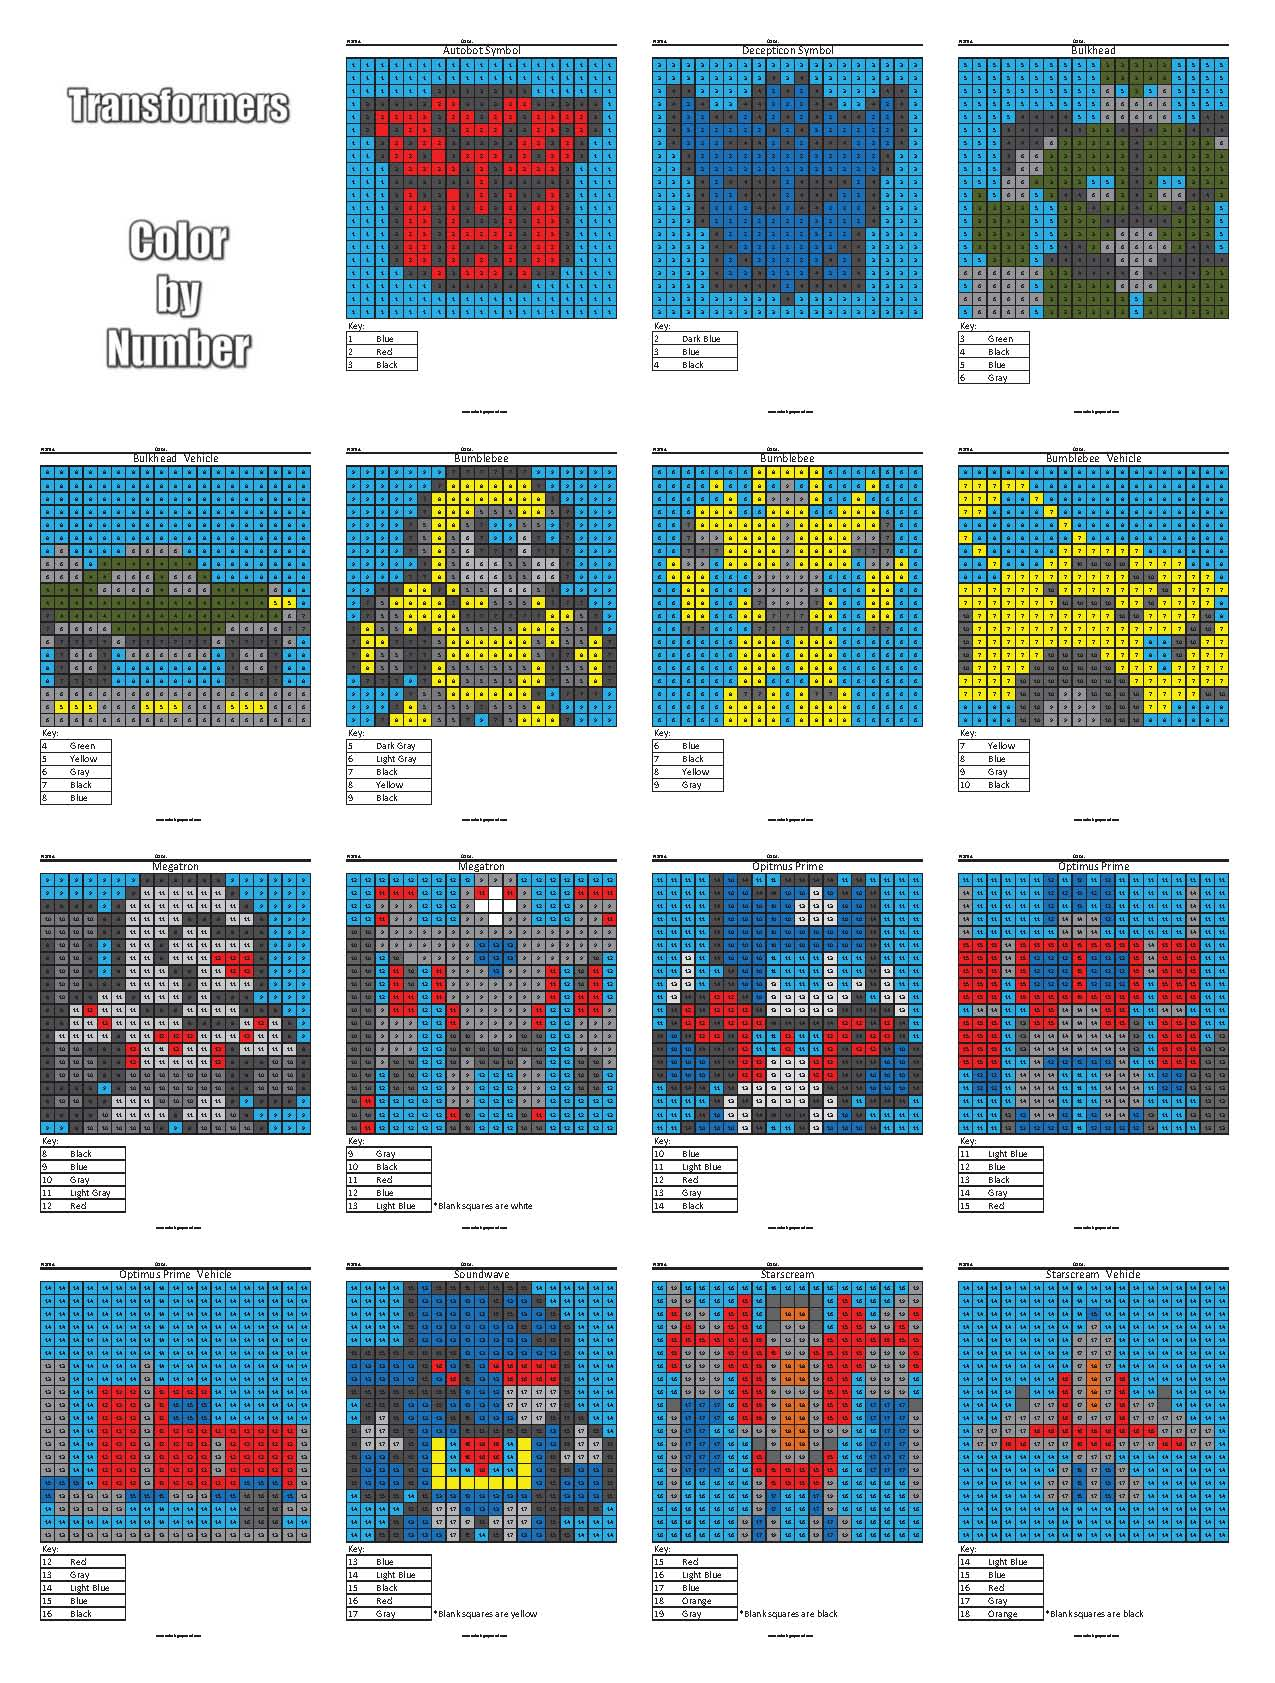 Similiar Transformers Color By Number Keywords